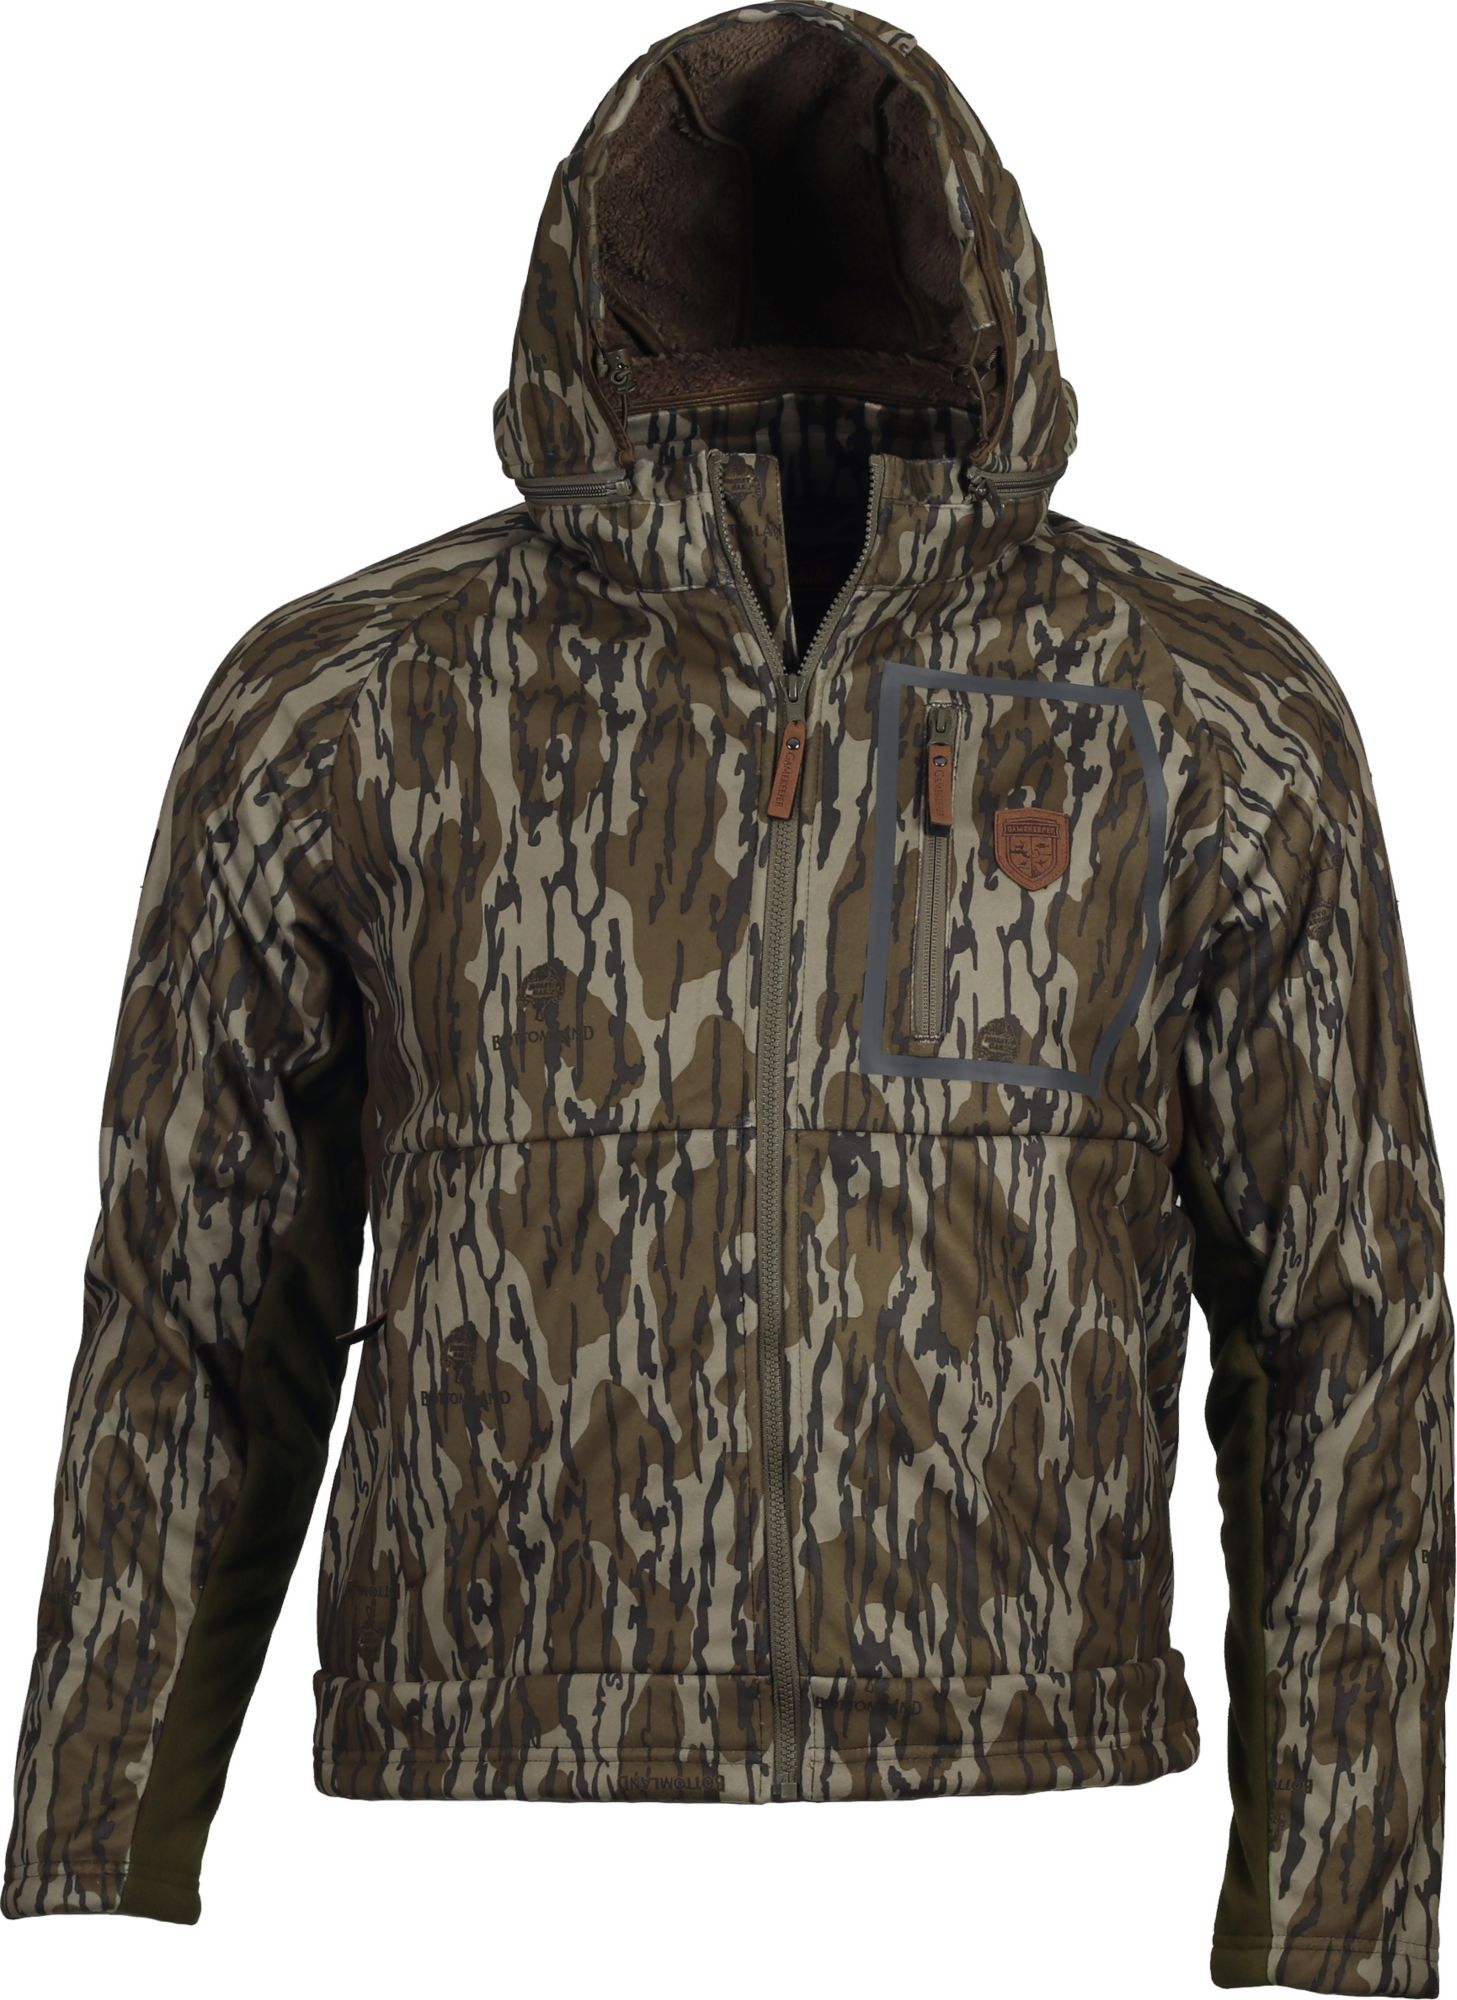 GameKeepers Men's Harvester Hunting Jacket, Size: Medium, Bottomland